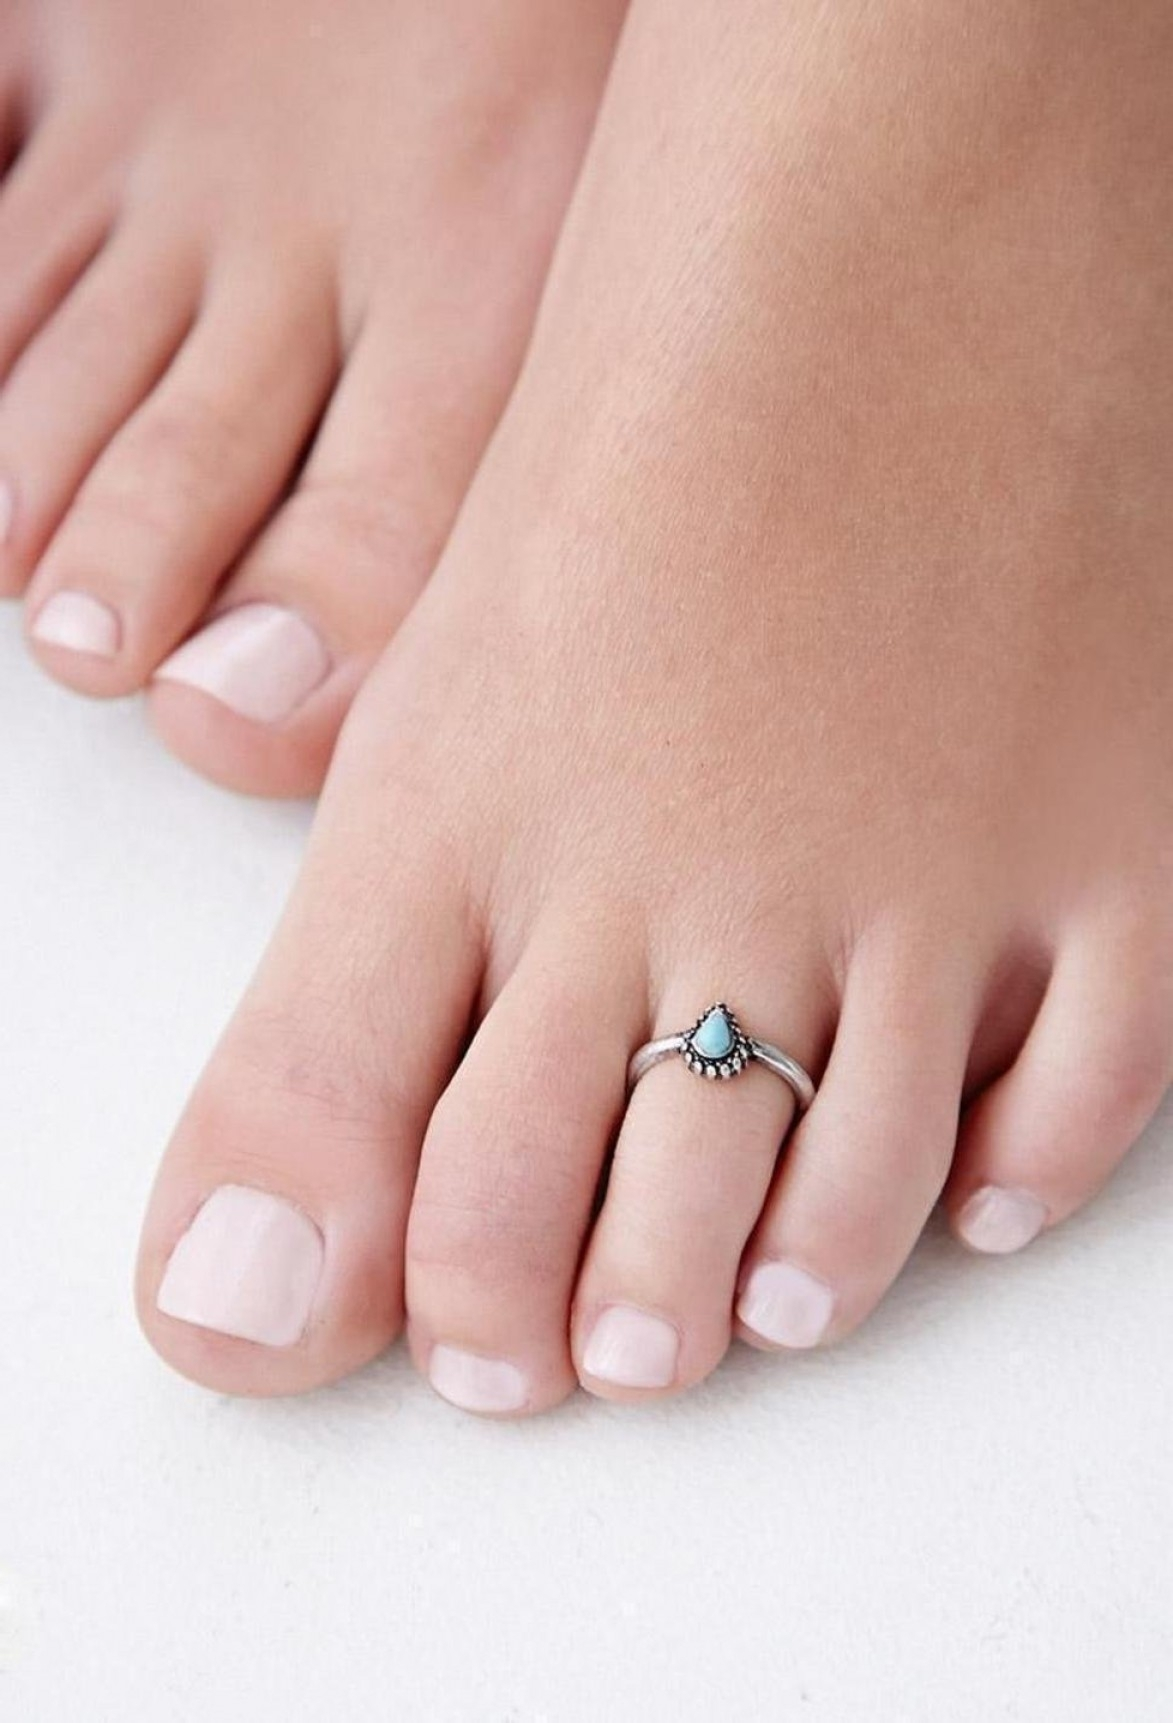 15 Best Collection of Permanent Toe Rings